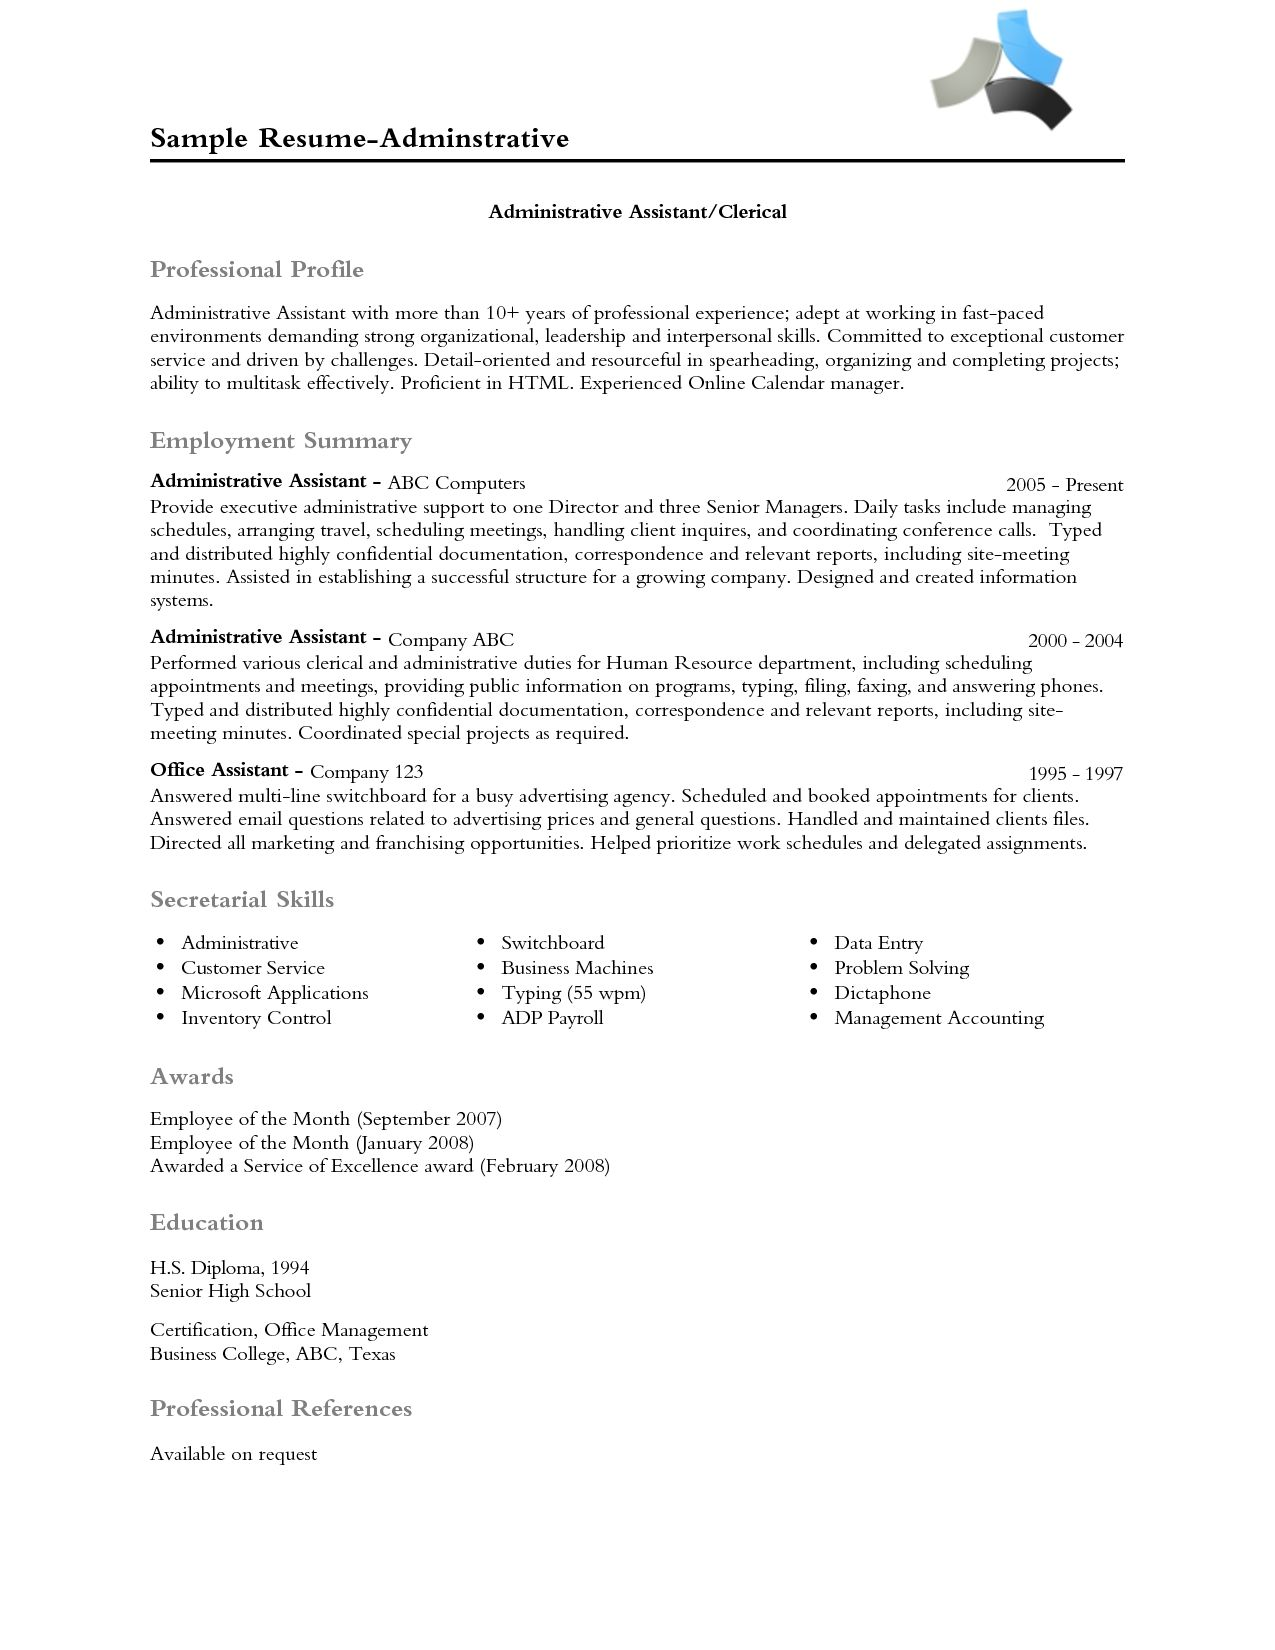 Resume Professional Profile Examples Professional Profile ...